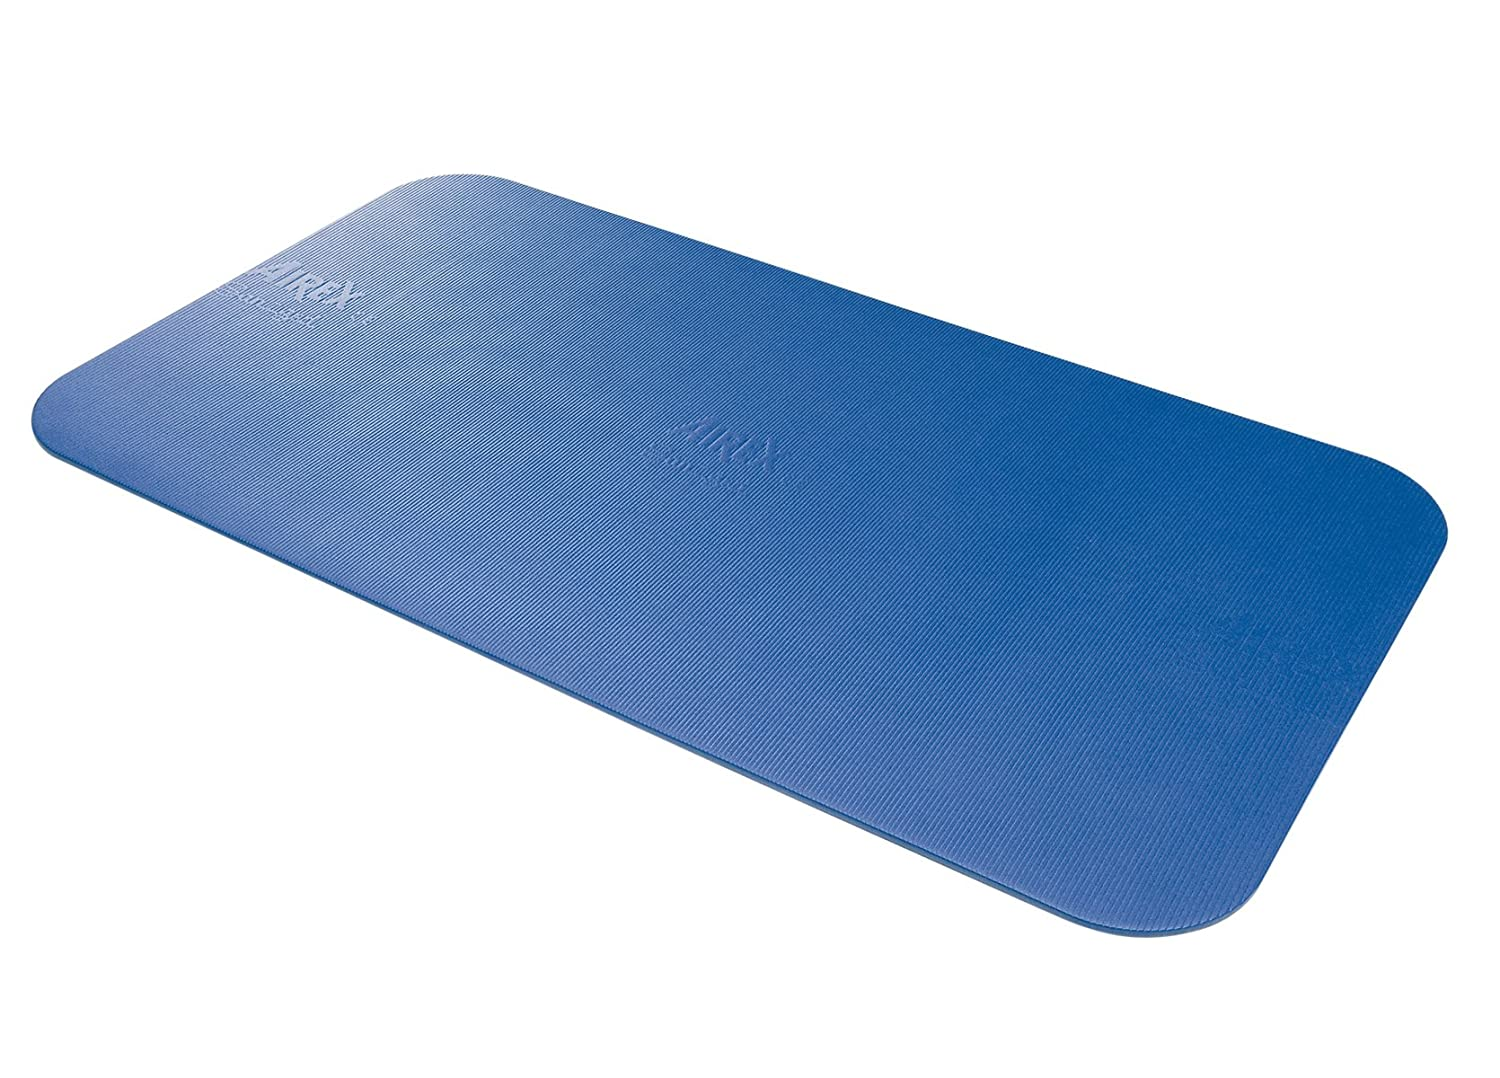 Airex Corona Workout Exercise Mat for Fitness, Gym Floor, Yoga, Pilates – Blue, 72 x 39 x 5 8